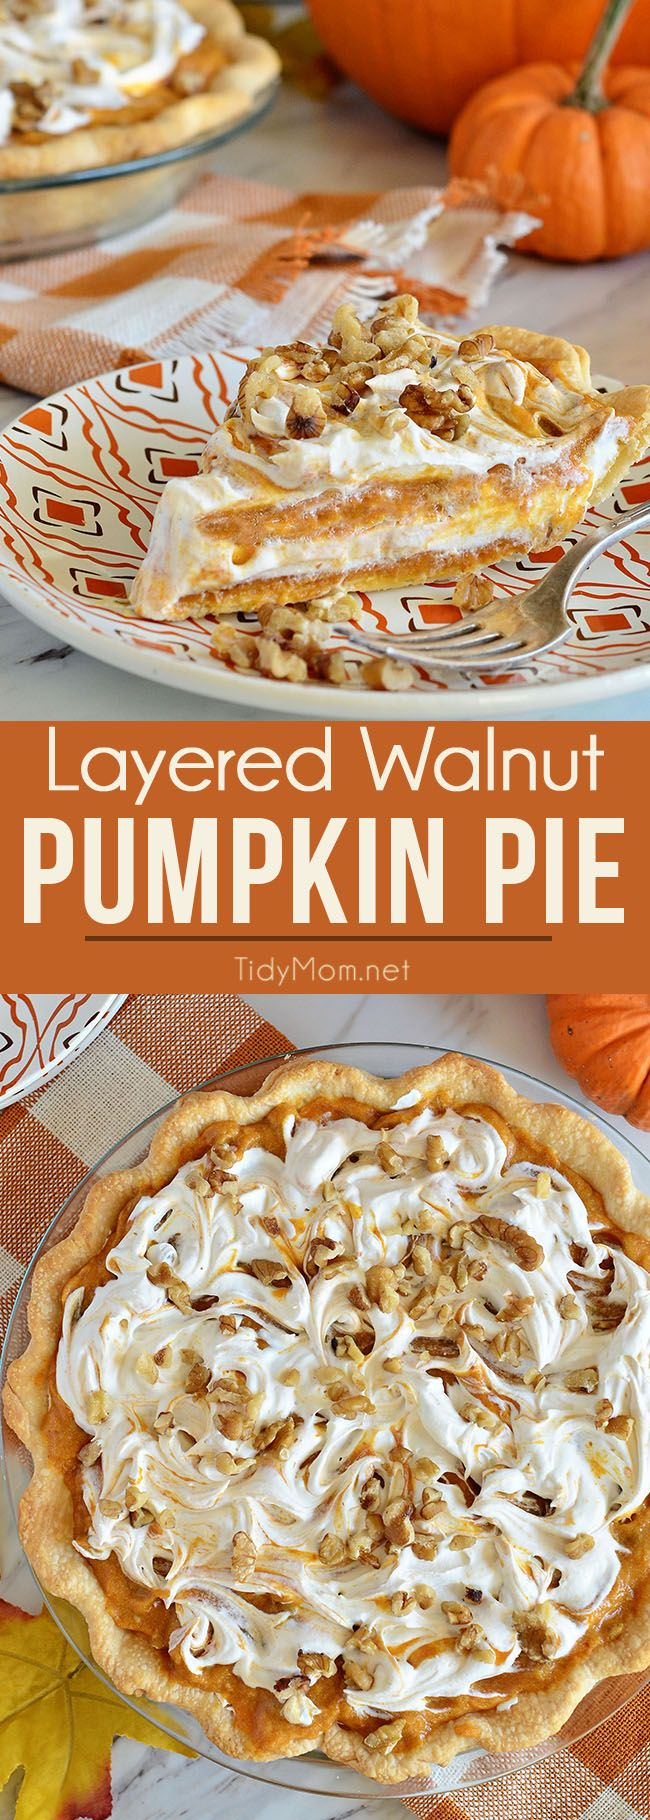 LAYERED WALNUT PUMPKIN PIE has been a long tradition in our family for Thanksgiving. This family favorite pumpkin pie recipe that was handed down to me by my grandpa 30+ years ago. This EASY recipe not your ordinary pumpkin pie, it's a light and fluffy, scrumptious, cold creamy pumpkin pie! A perfect alternative to regular pumpkin pie for Thanksgiving or Christmas dessert. PRINT the recipe at Tidymom.net